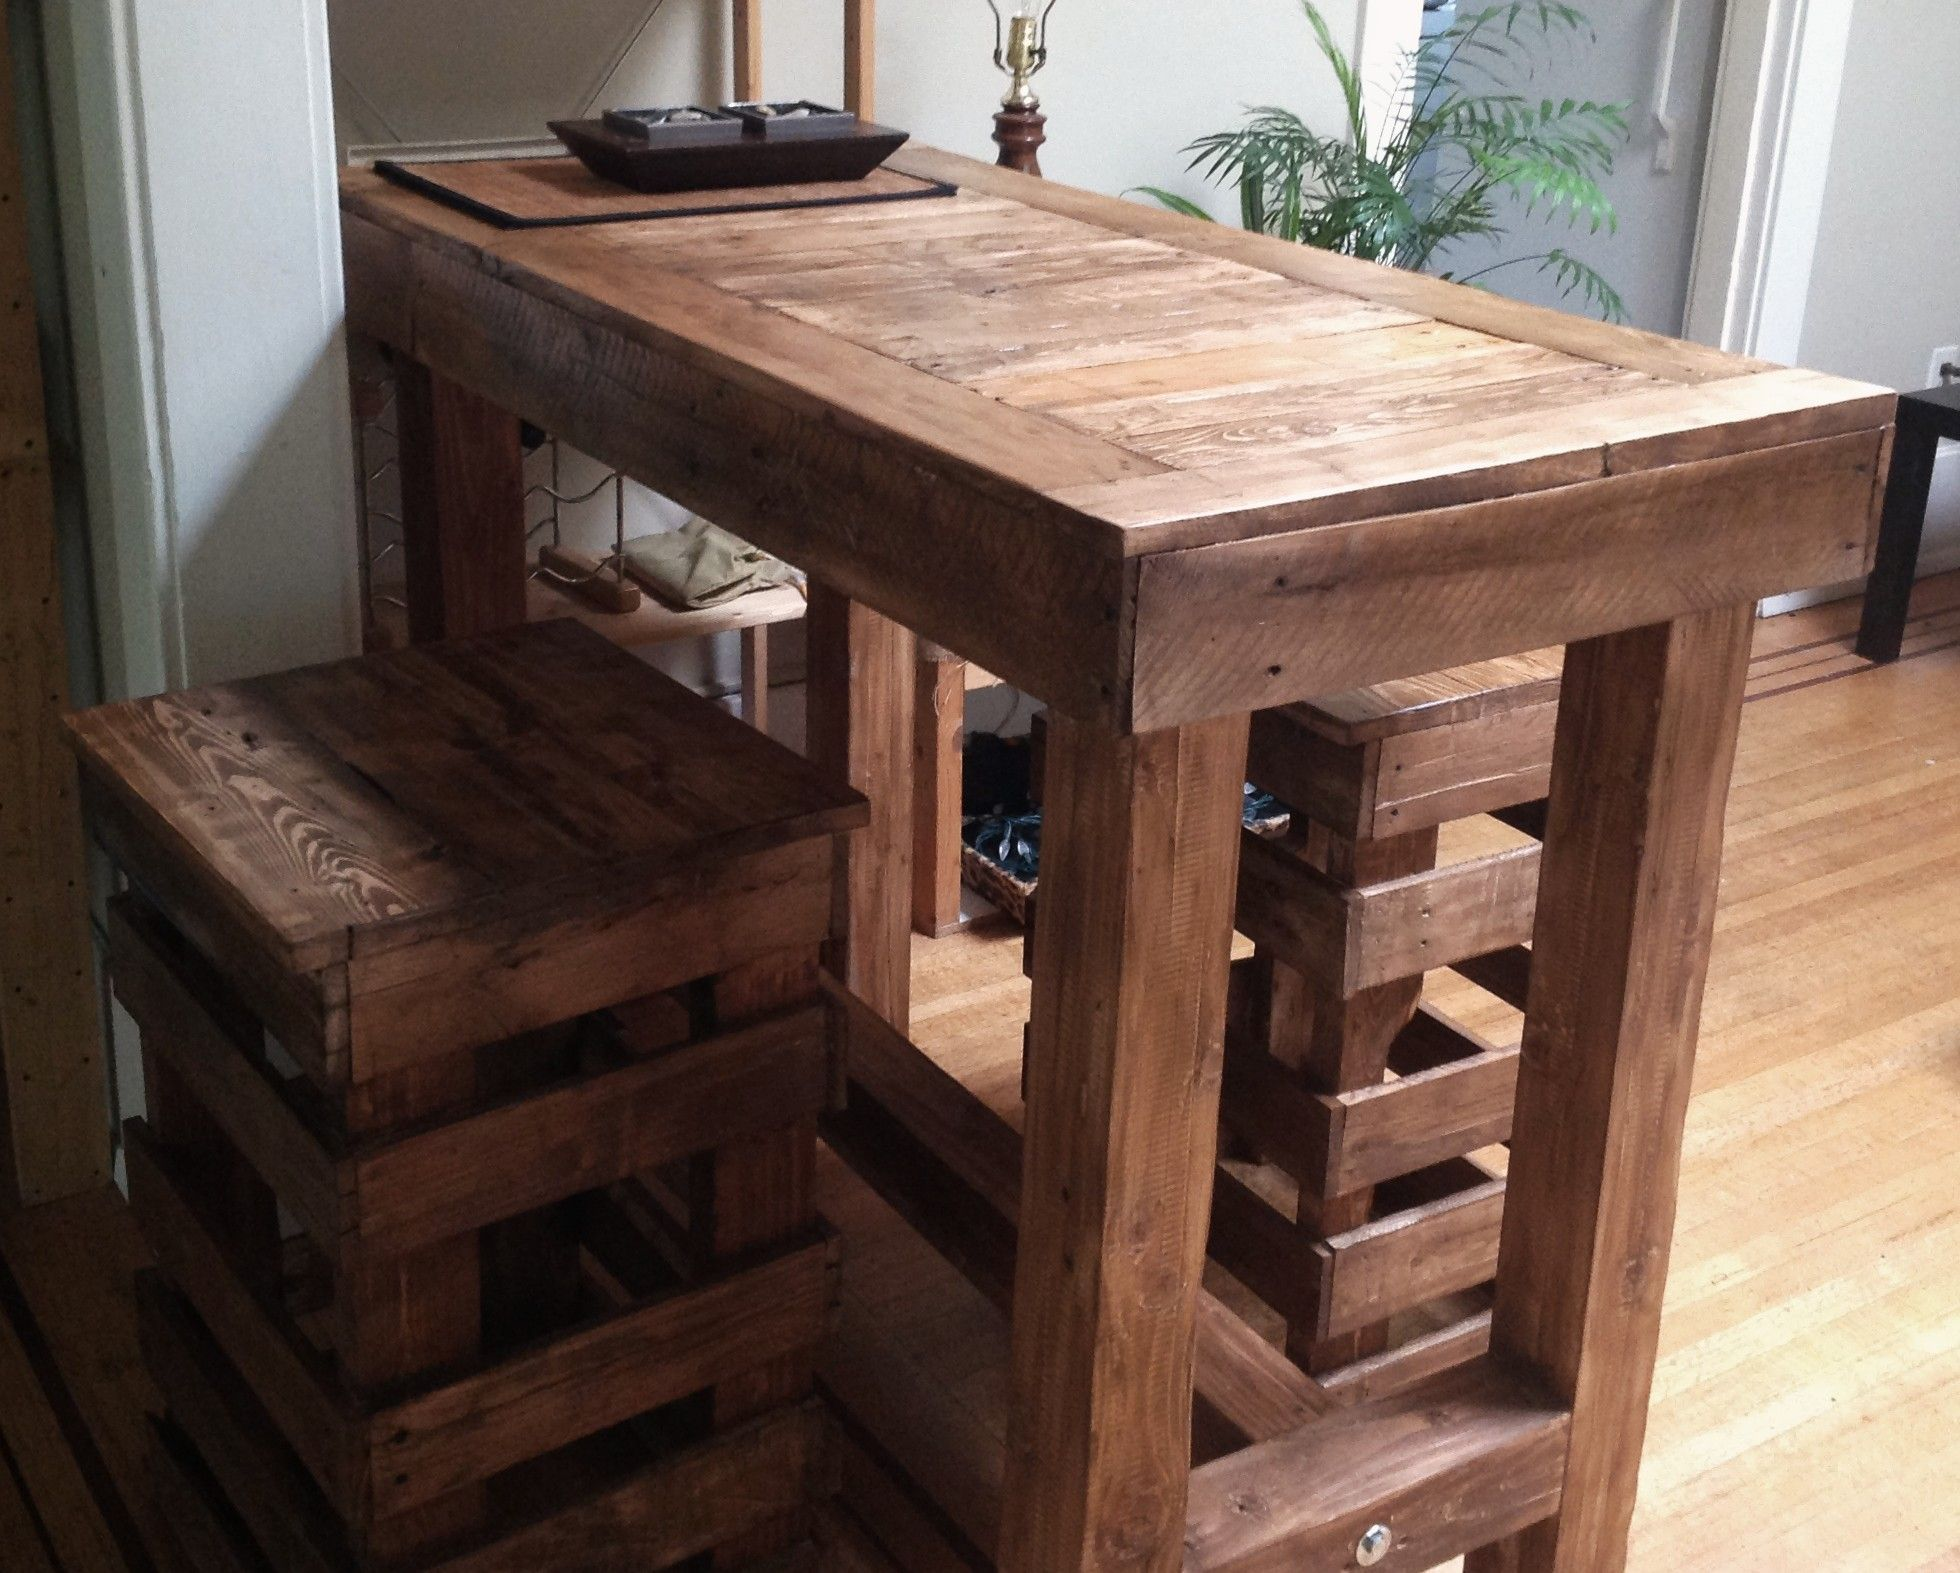 Selbstgebaute Bar Pallet Stool | Bar Table, Wood Bar Table, Wood Coffee Table Rustic